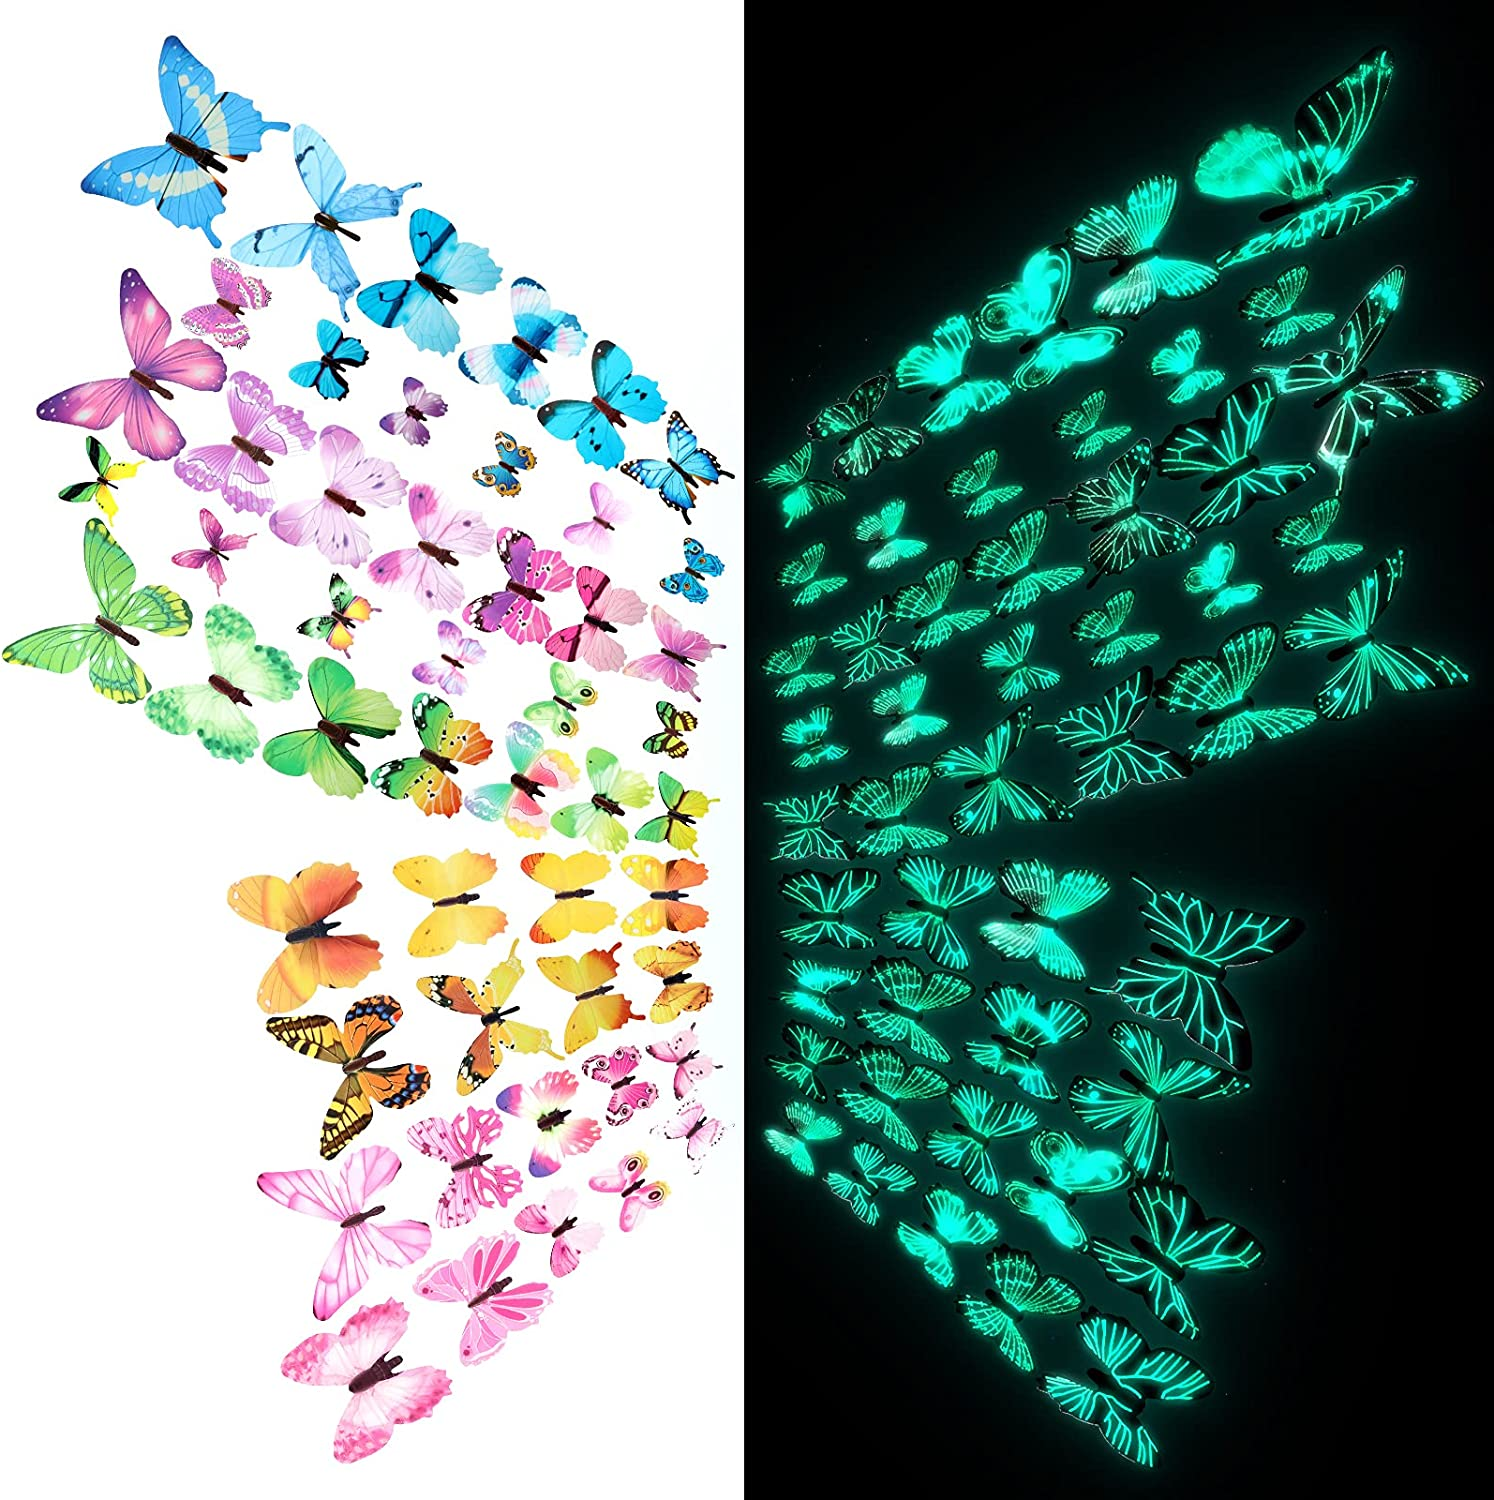 120 Pieces Butterfly Wall Decals Glow in The Dark 3D Butterfly Stickers Luminous Butterfly Wall Decor 3D Butterfly Wall Decoration for Bedroom Nursery Living Room Home Garden Decoration